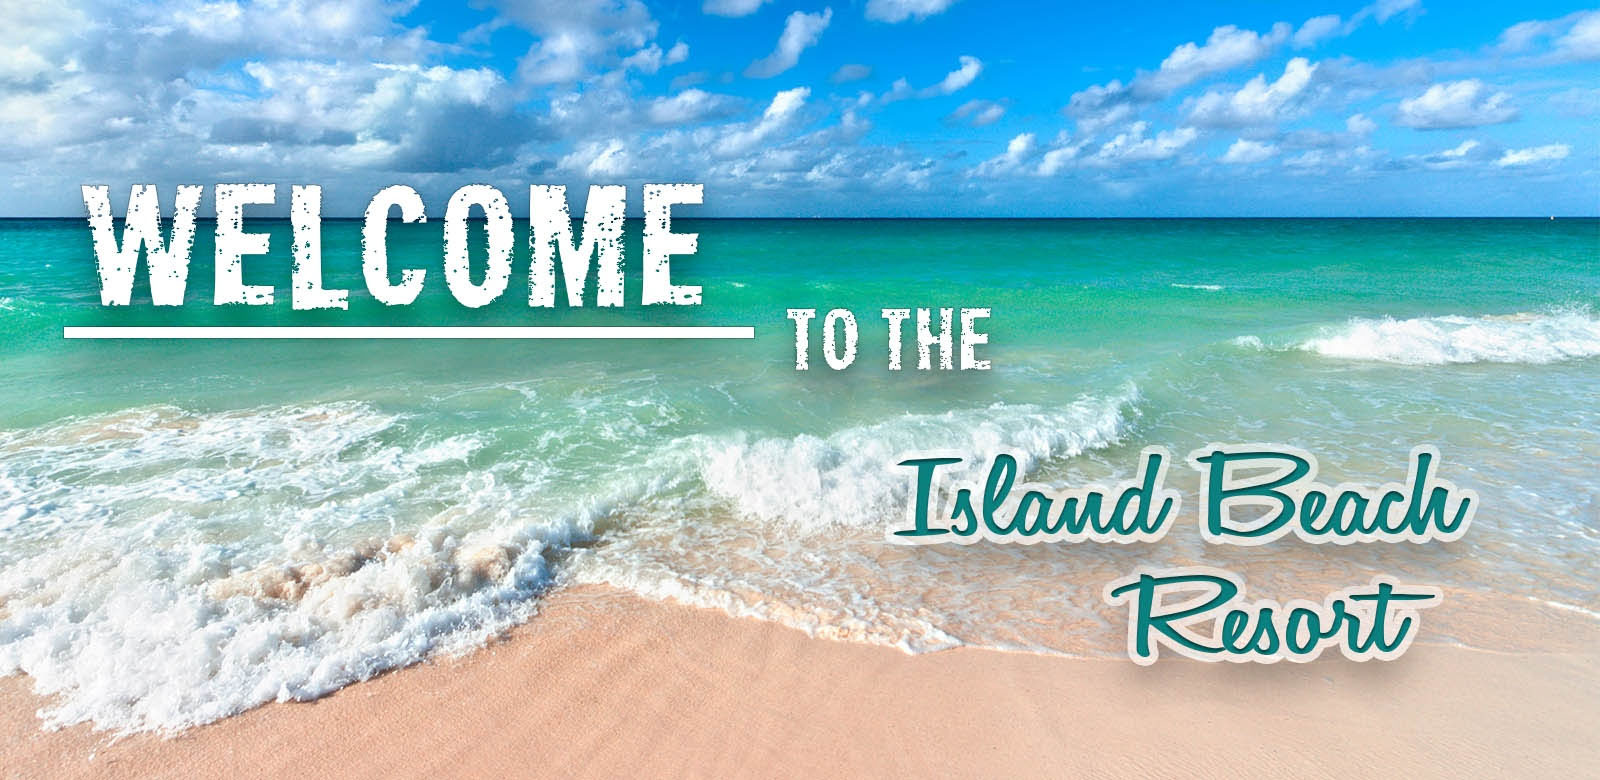 Welcome to the island beach resort